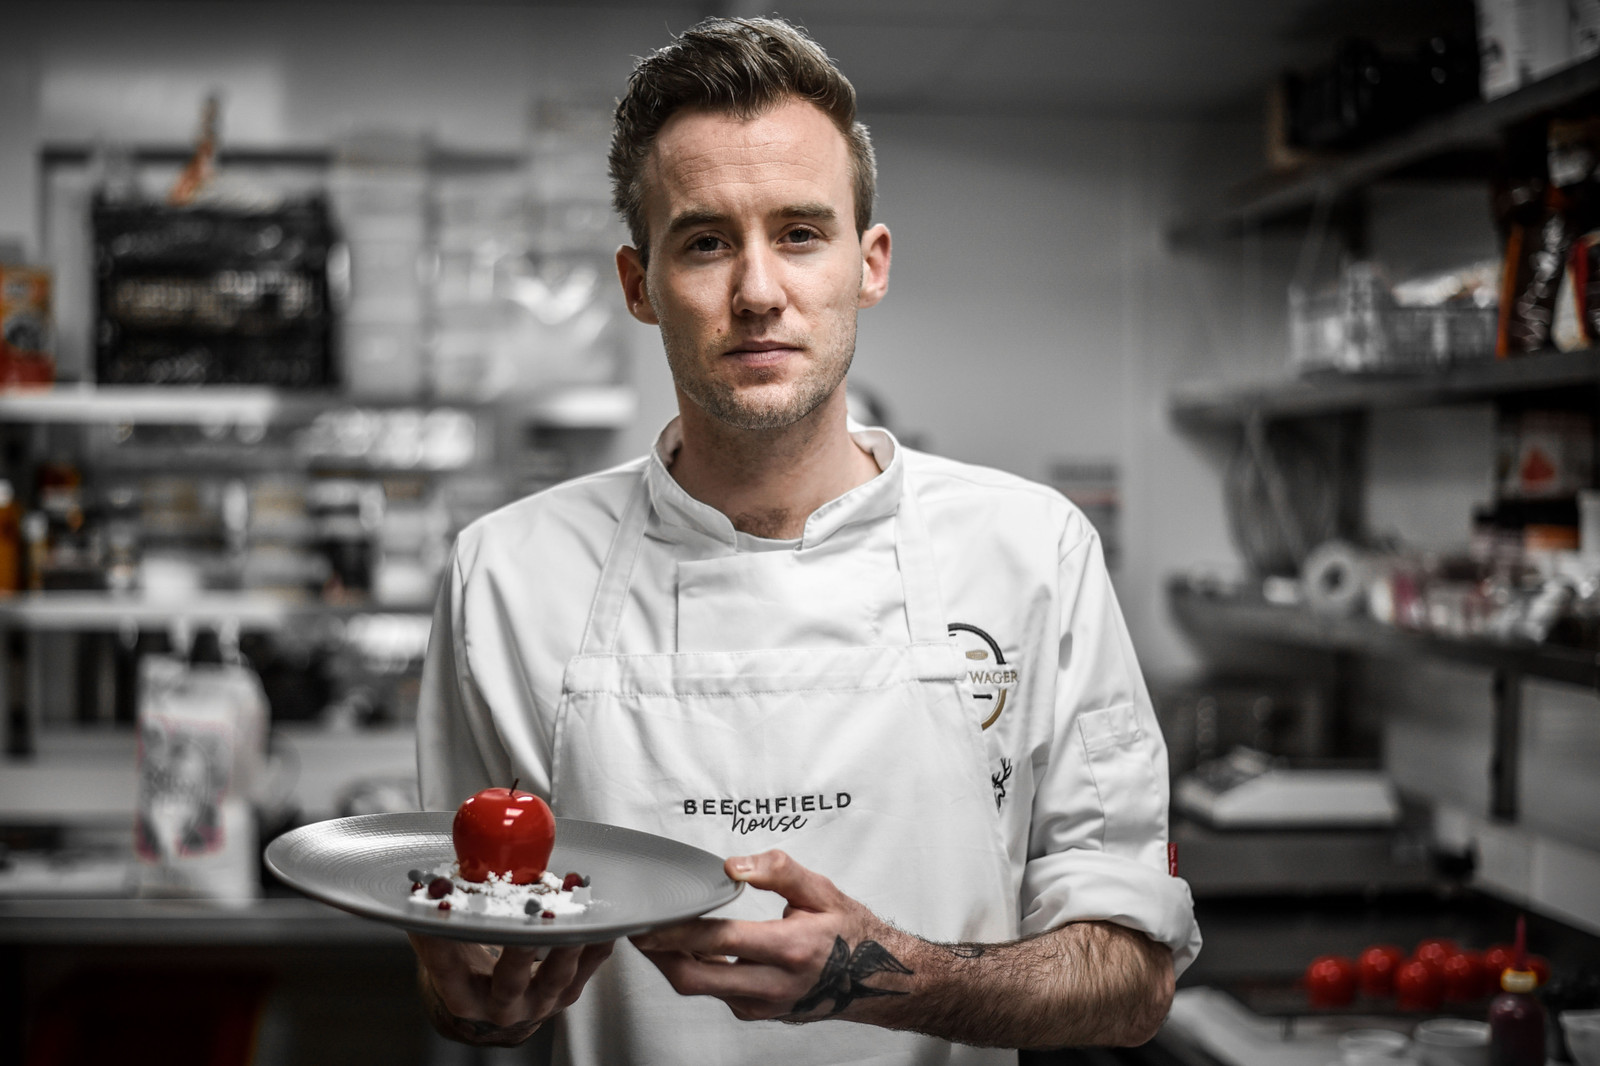 pastry chef la introduction - HD1600×1066